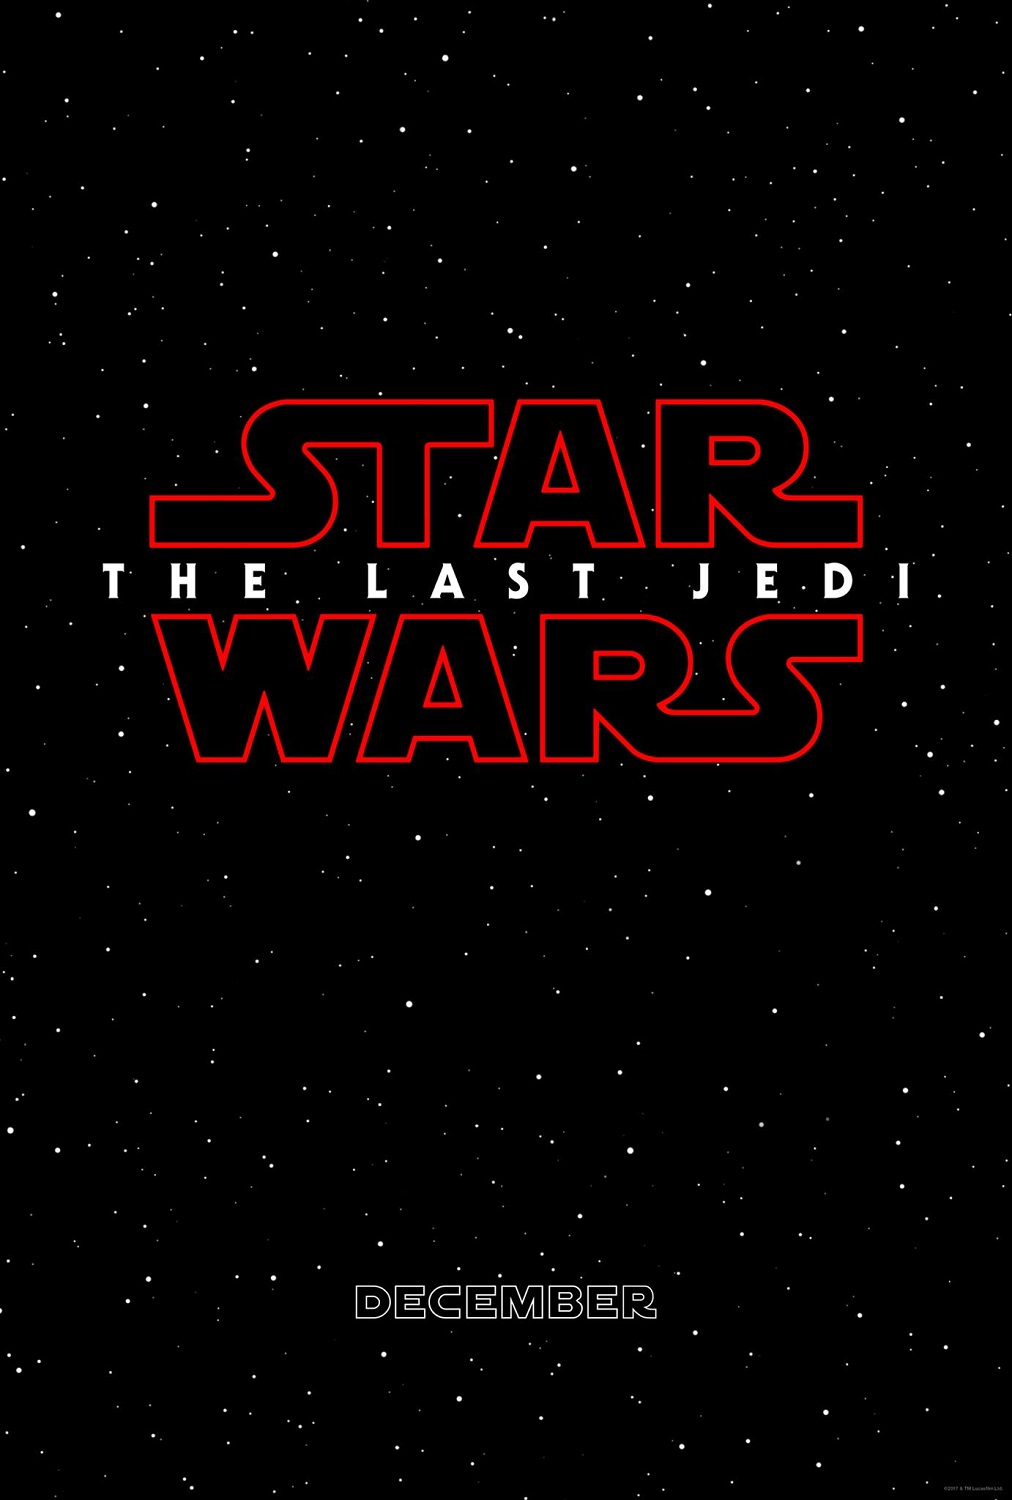 Star Wars Episode VIII - The Last Jedi